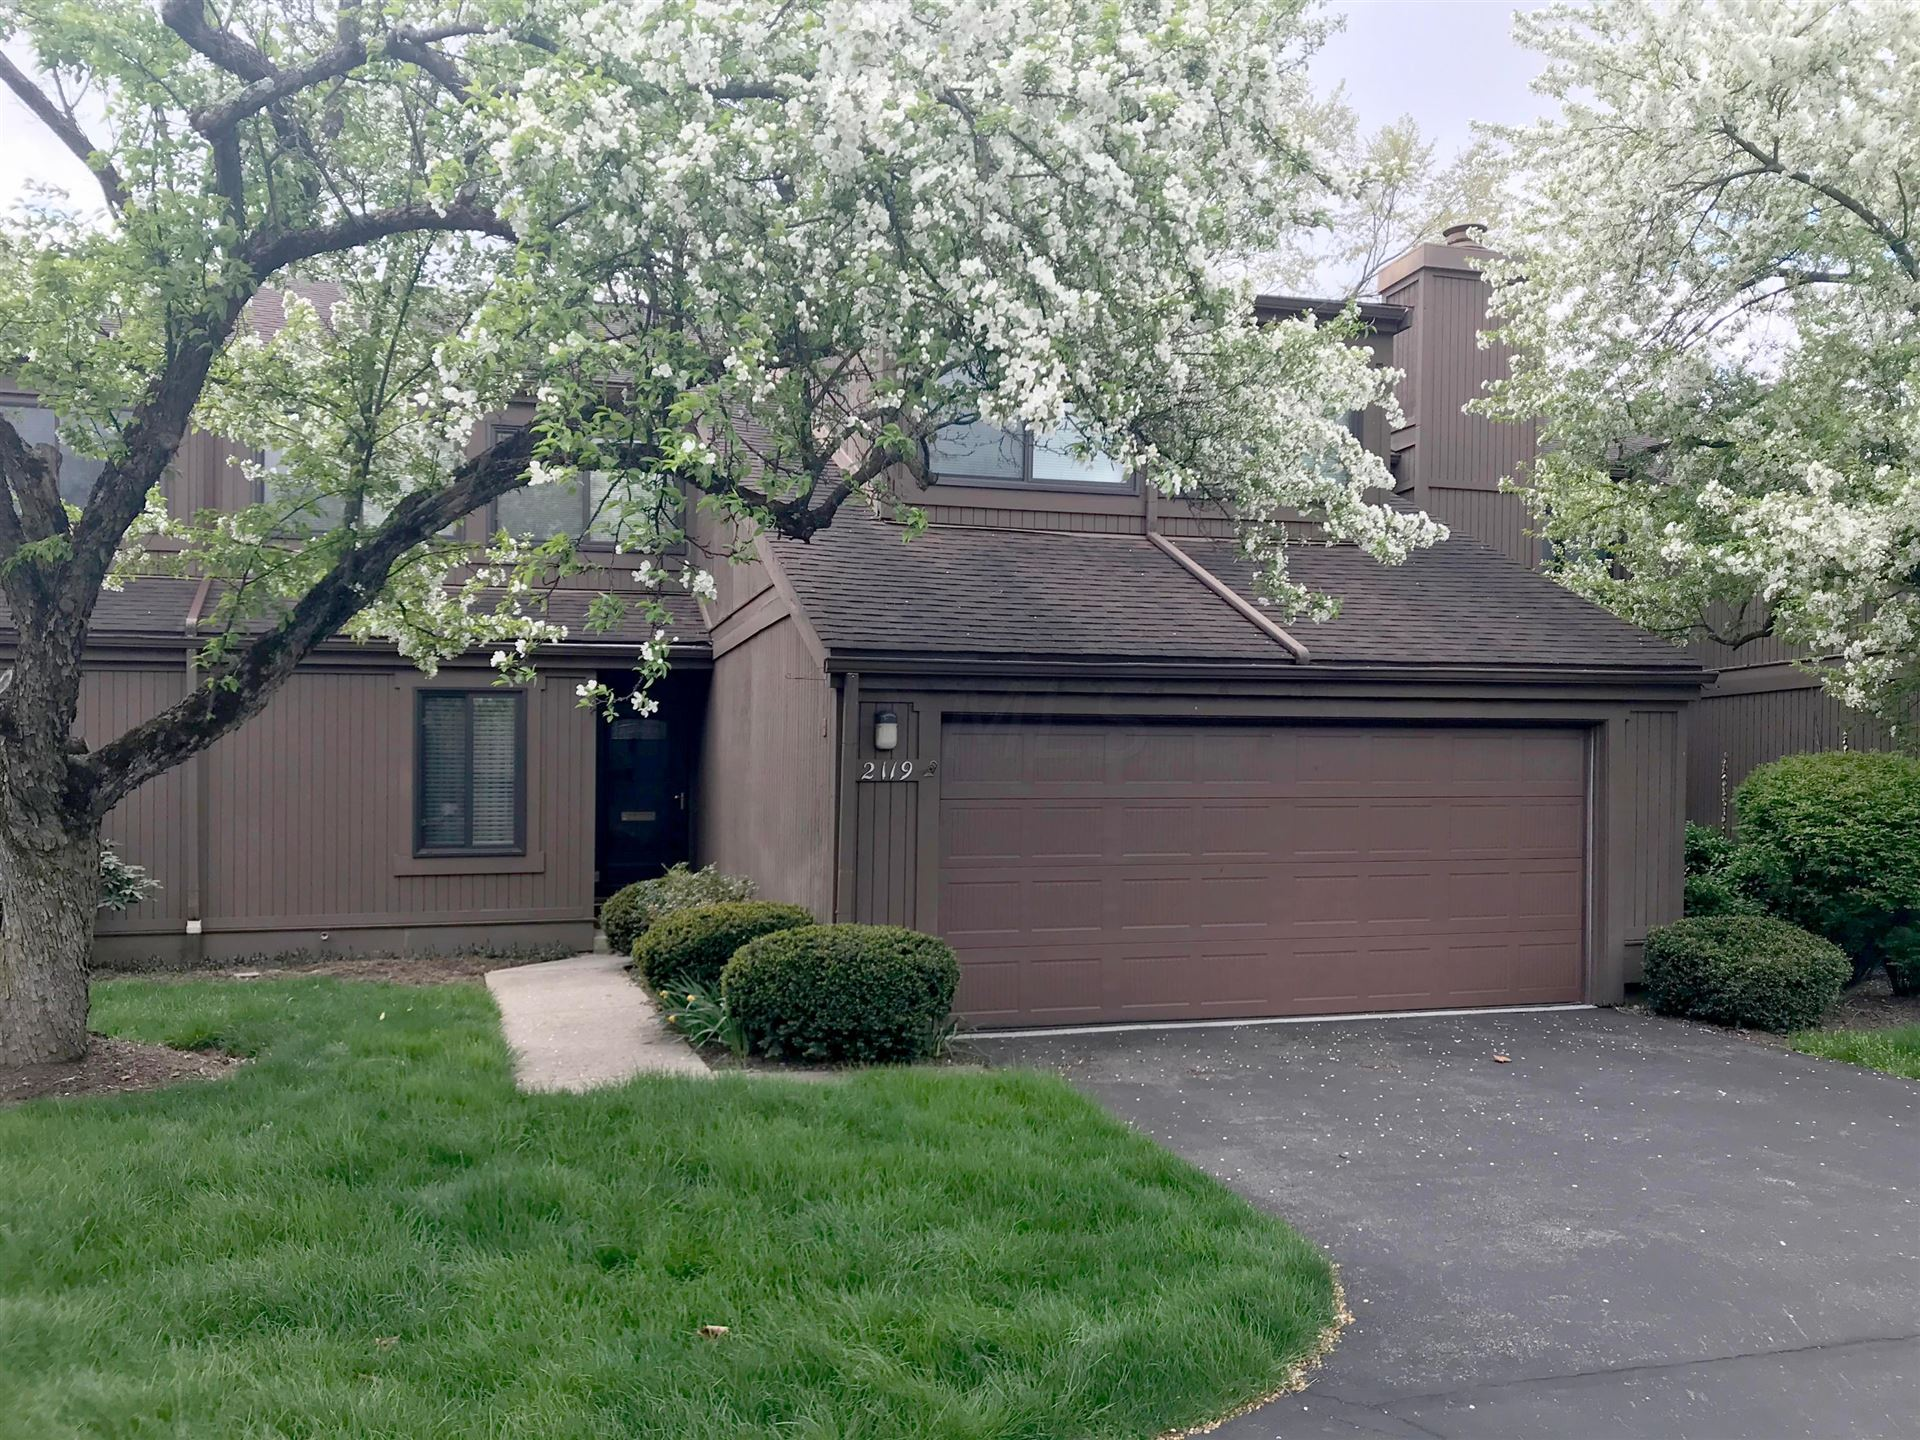 2119 Willowick Drive, Columbus, OH 43229 - #: 221011940